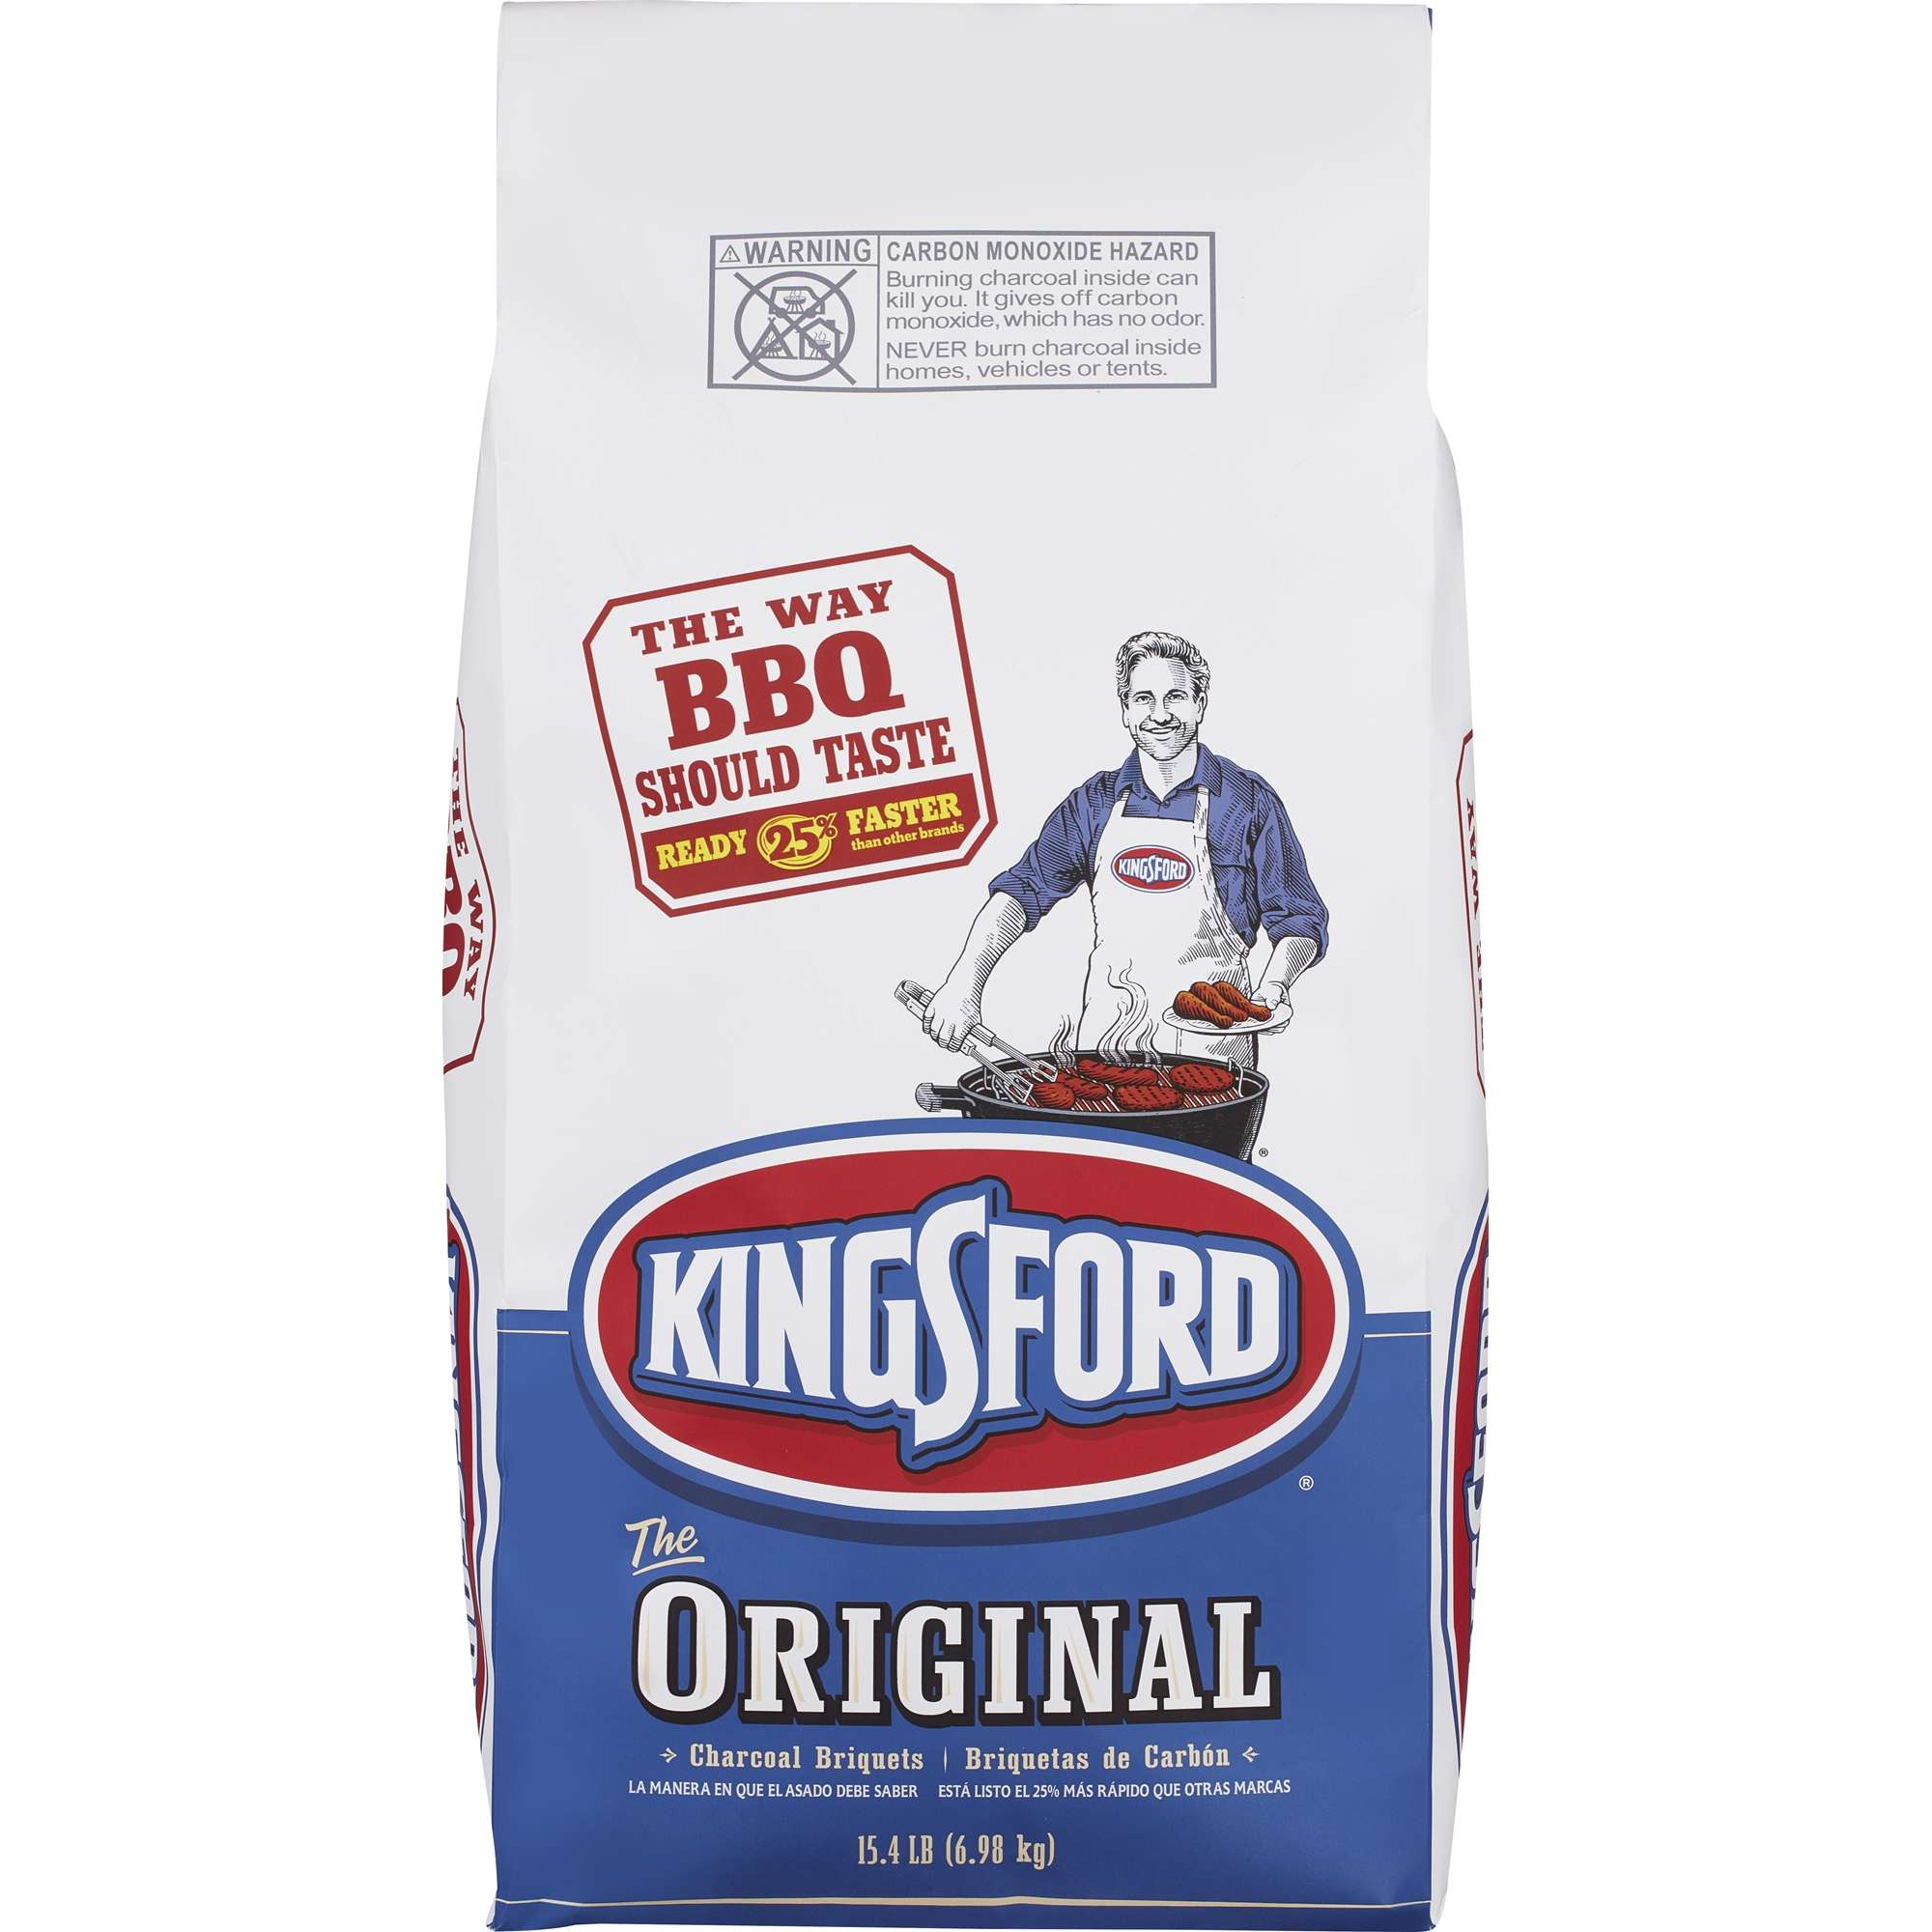 kingsford charcoal case Kingsford charcoal case analysis, kingsford charcoal case study solution, kingsford charcoal xls file, kingsford charcoal excel file, subjects covered advertising brand management marketing.